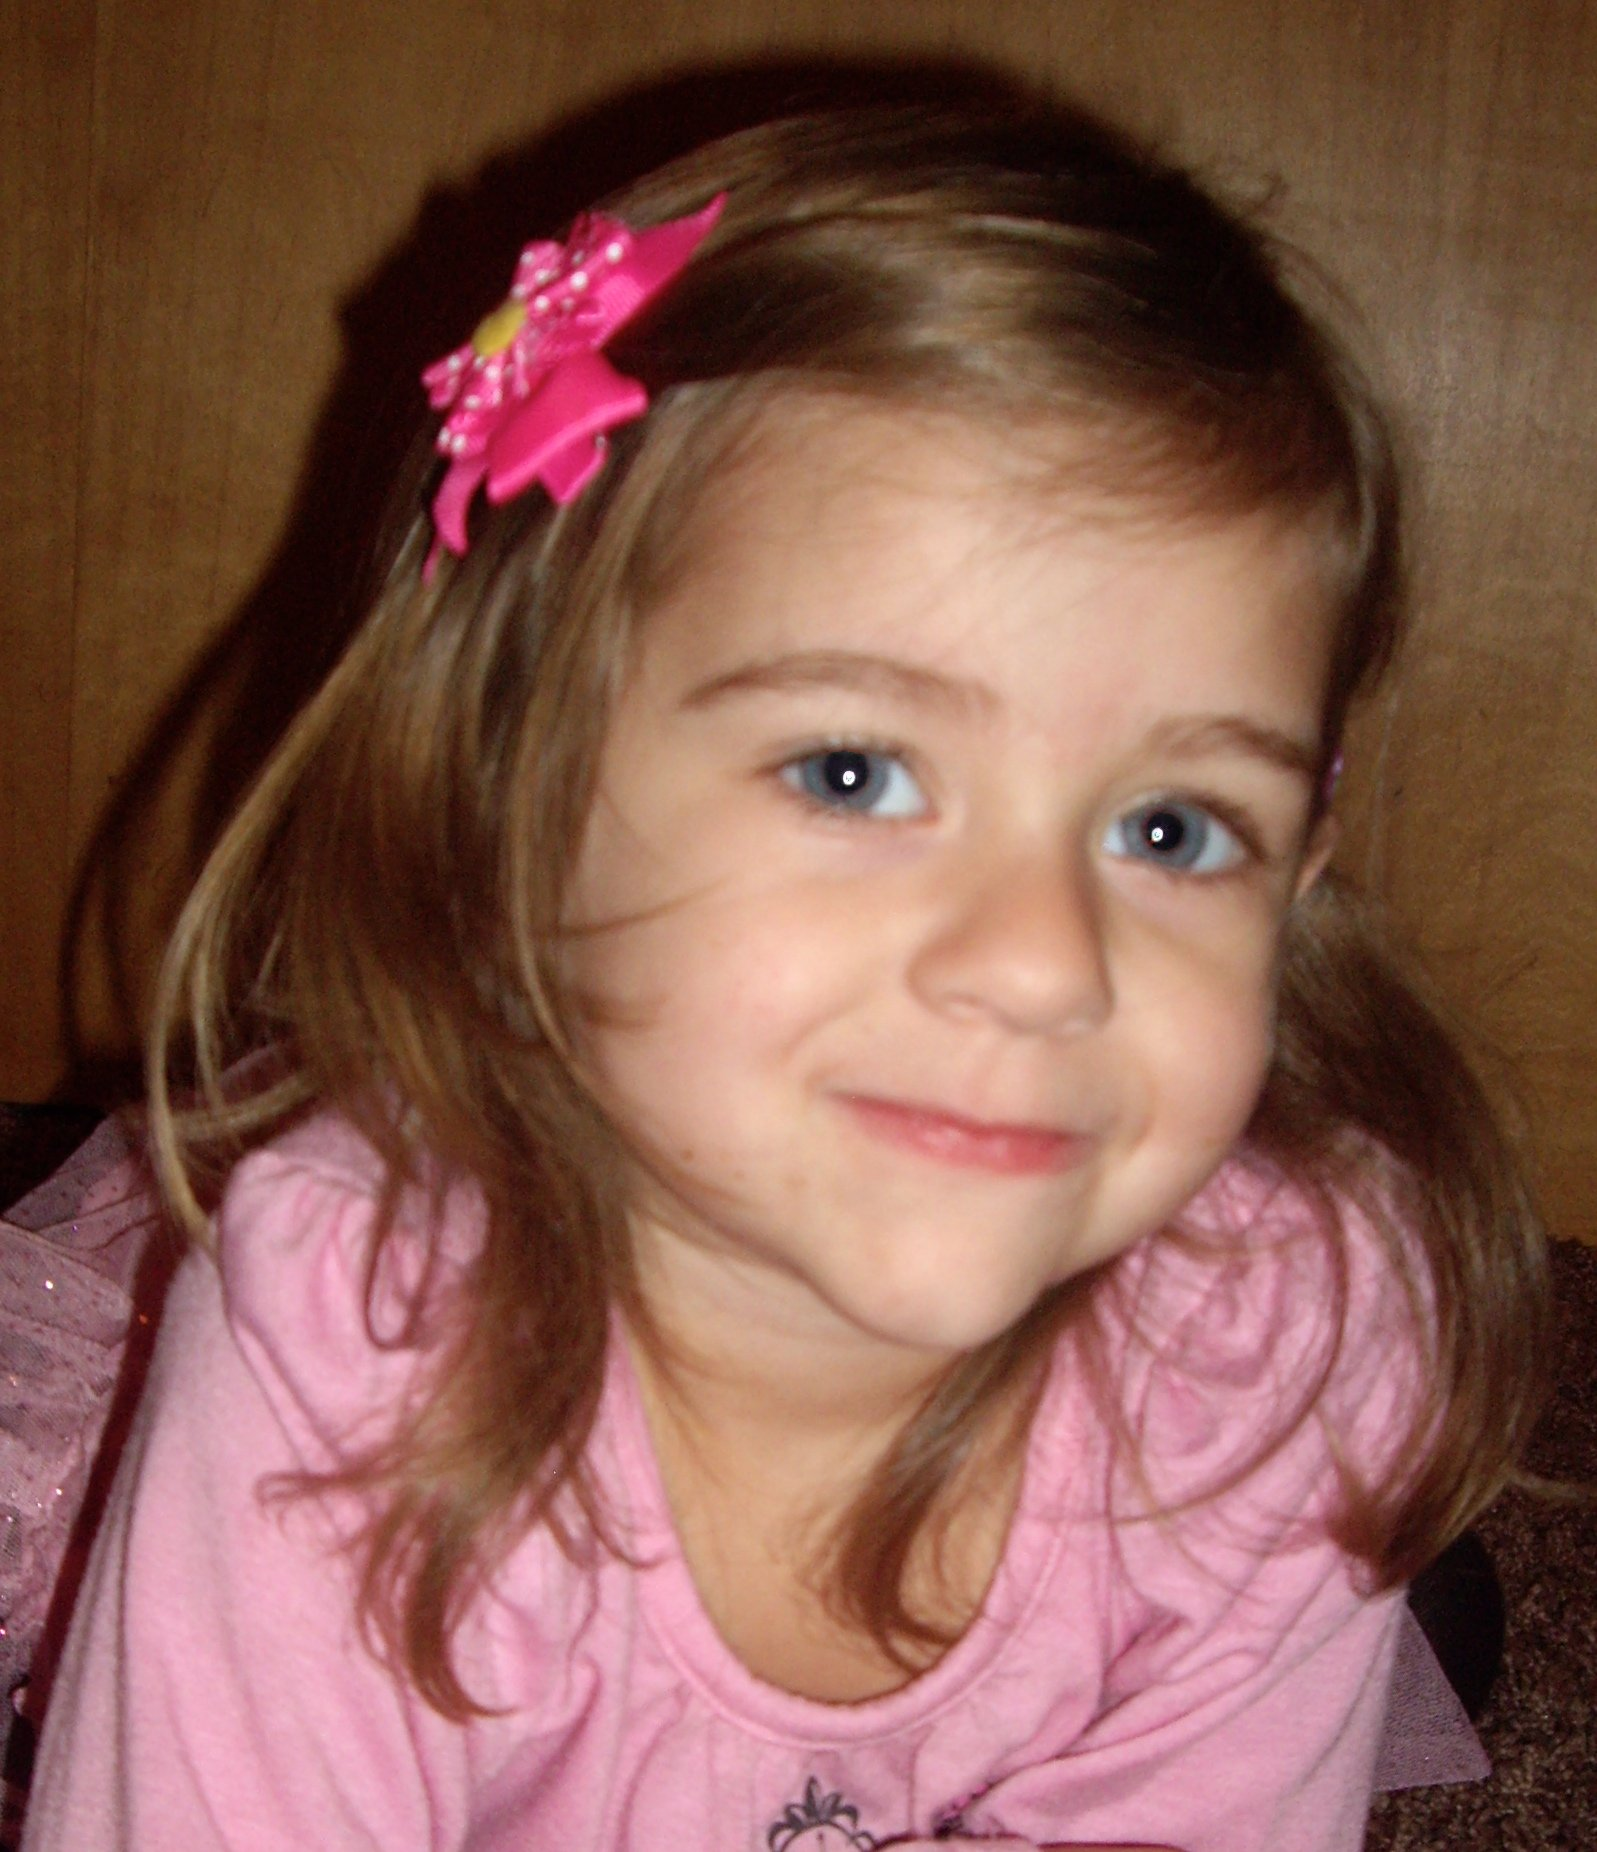 Kiera Kraus, 3 / Courtesy: Pat Boyle Funeral Home and Cremation